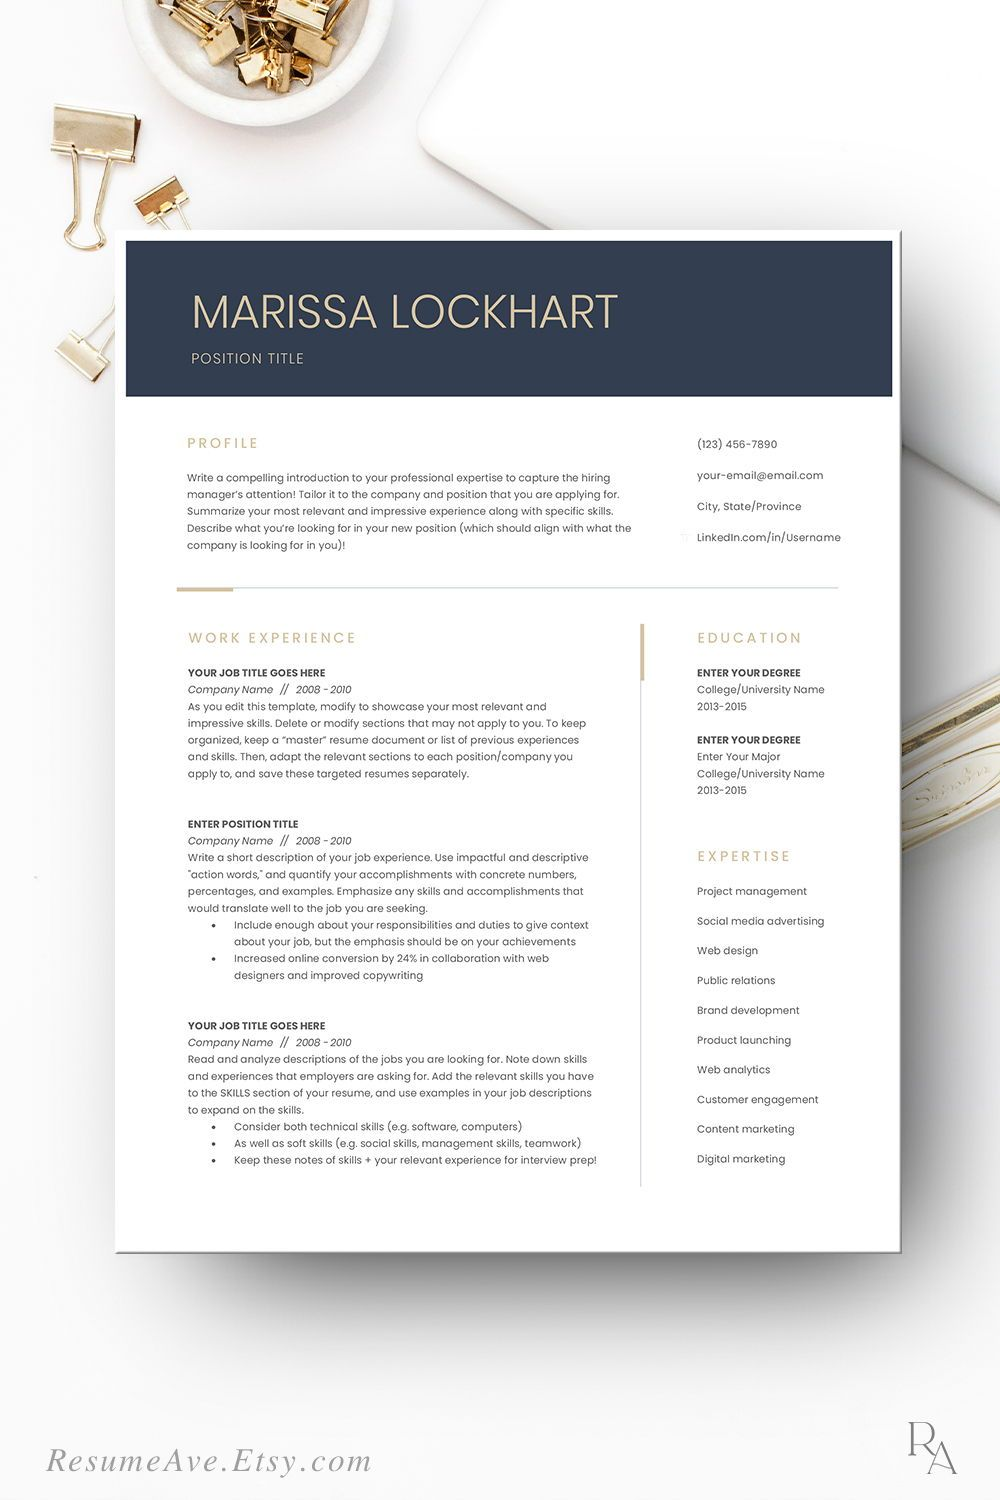 Profesional executive resume for digital download teacher